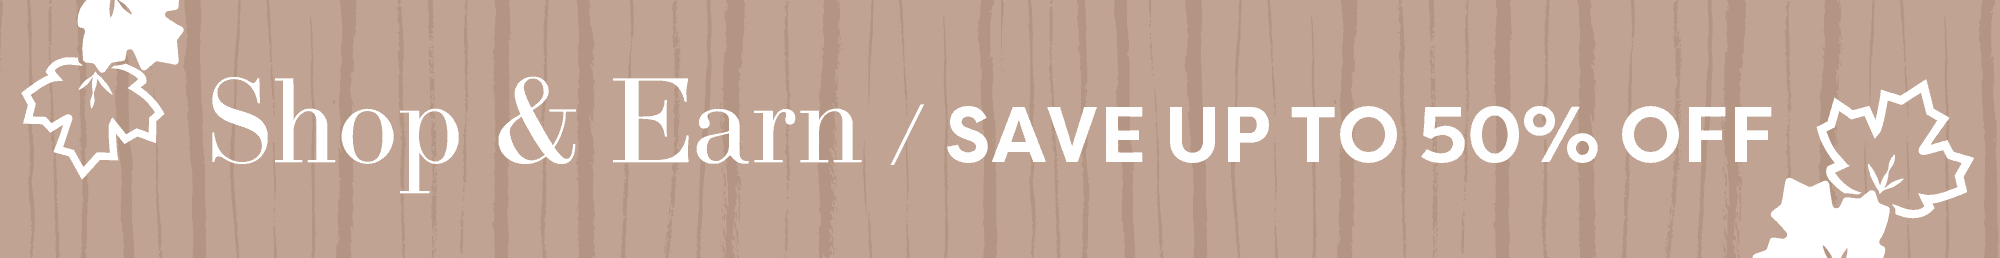 Shop and Earn. Save up to 50%.